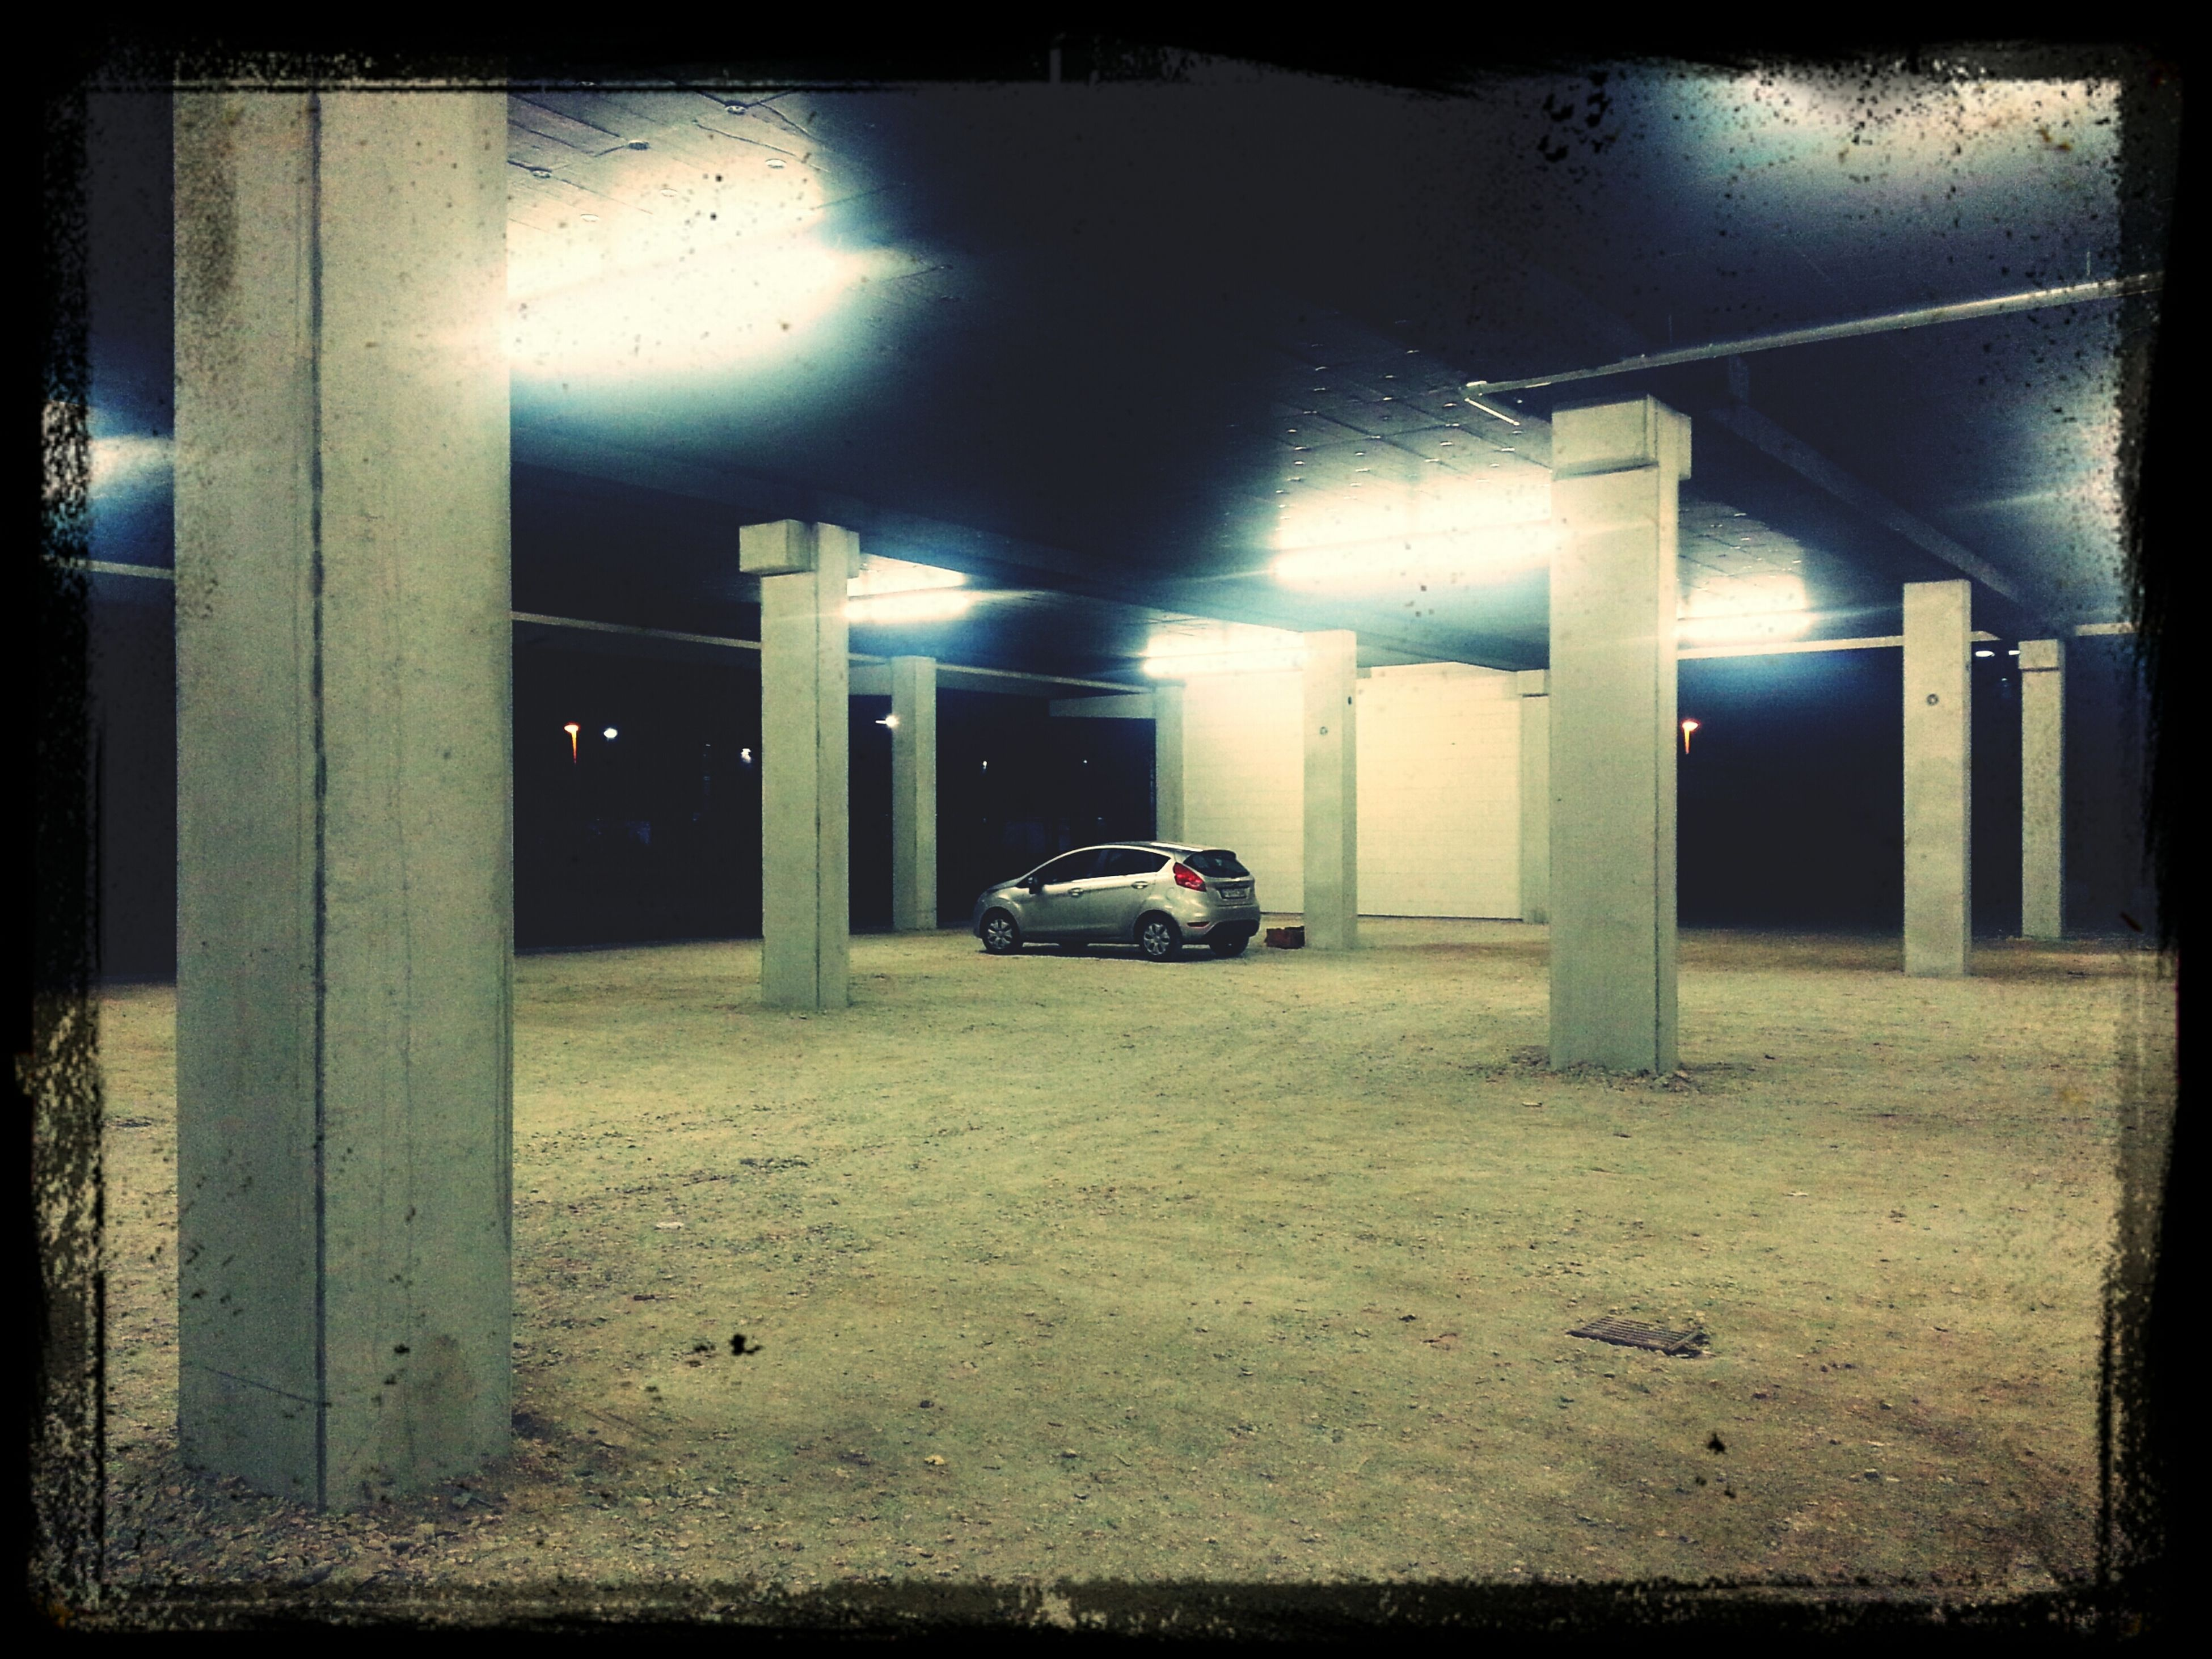 My lonely car. Parking Lot Spooky Atmosphere After Dark Crime Scene